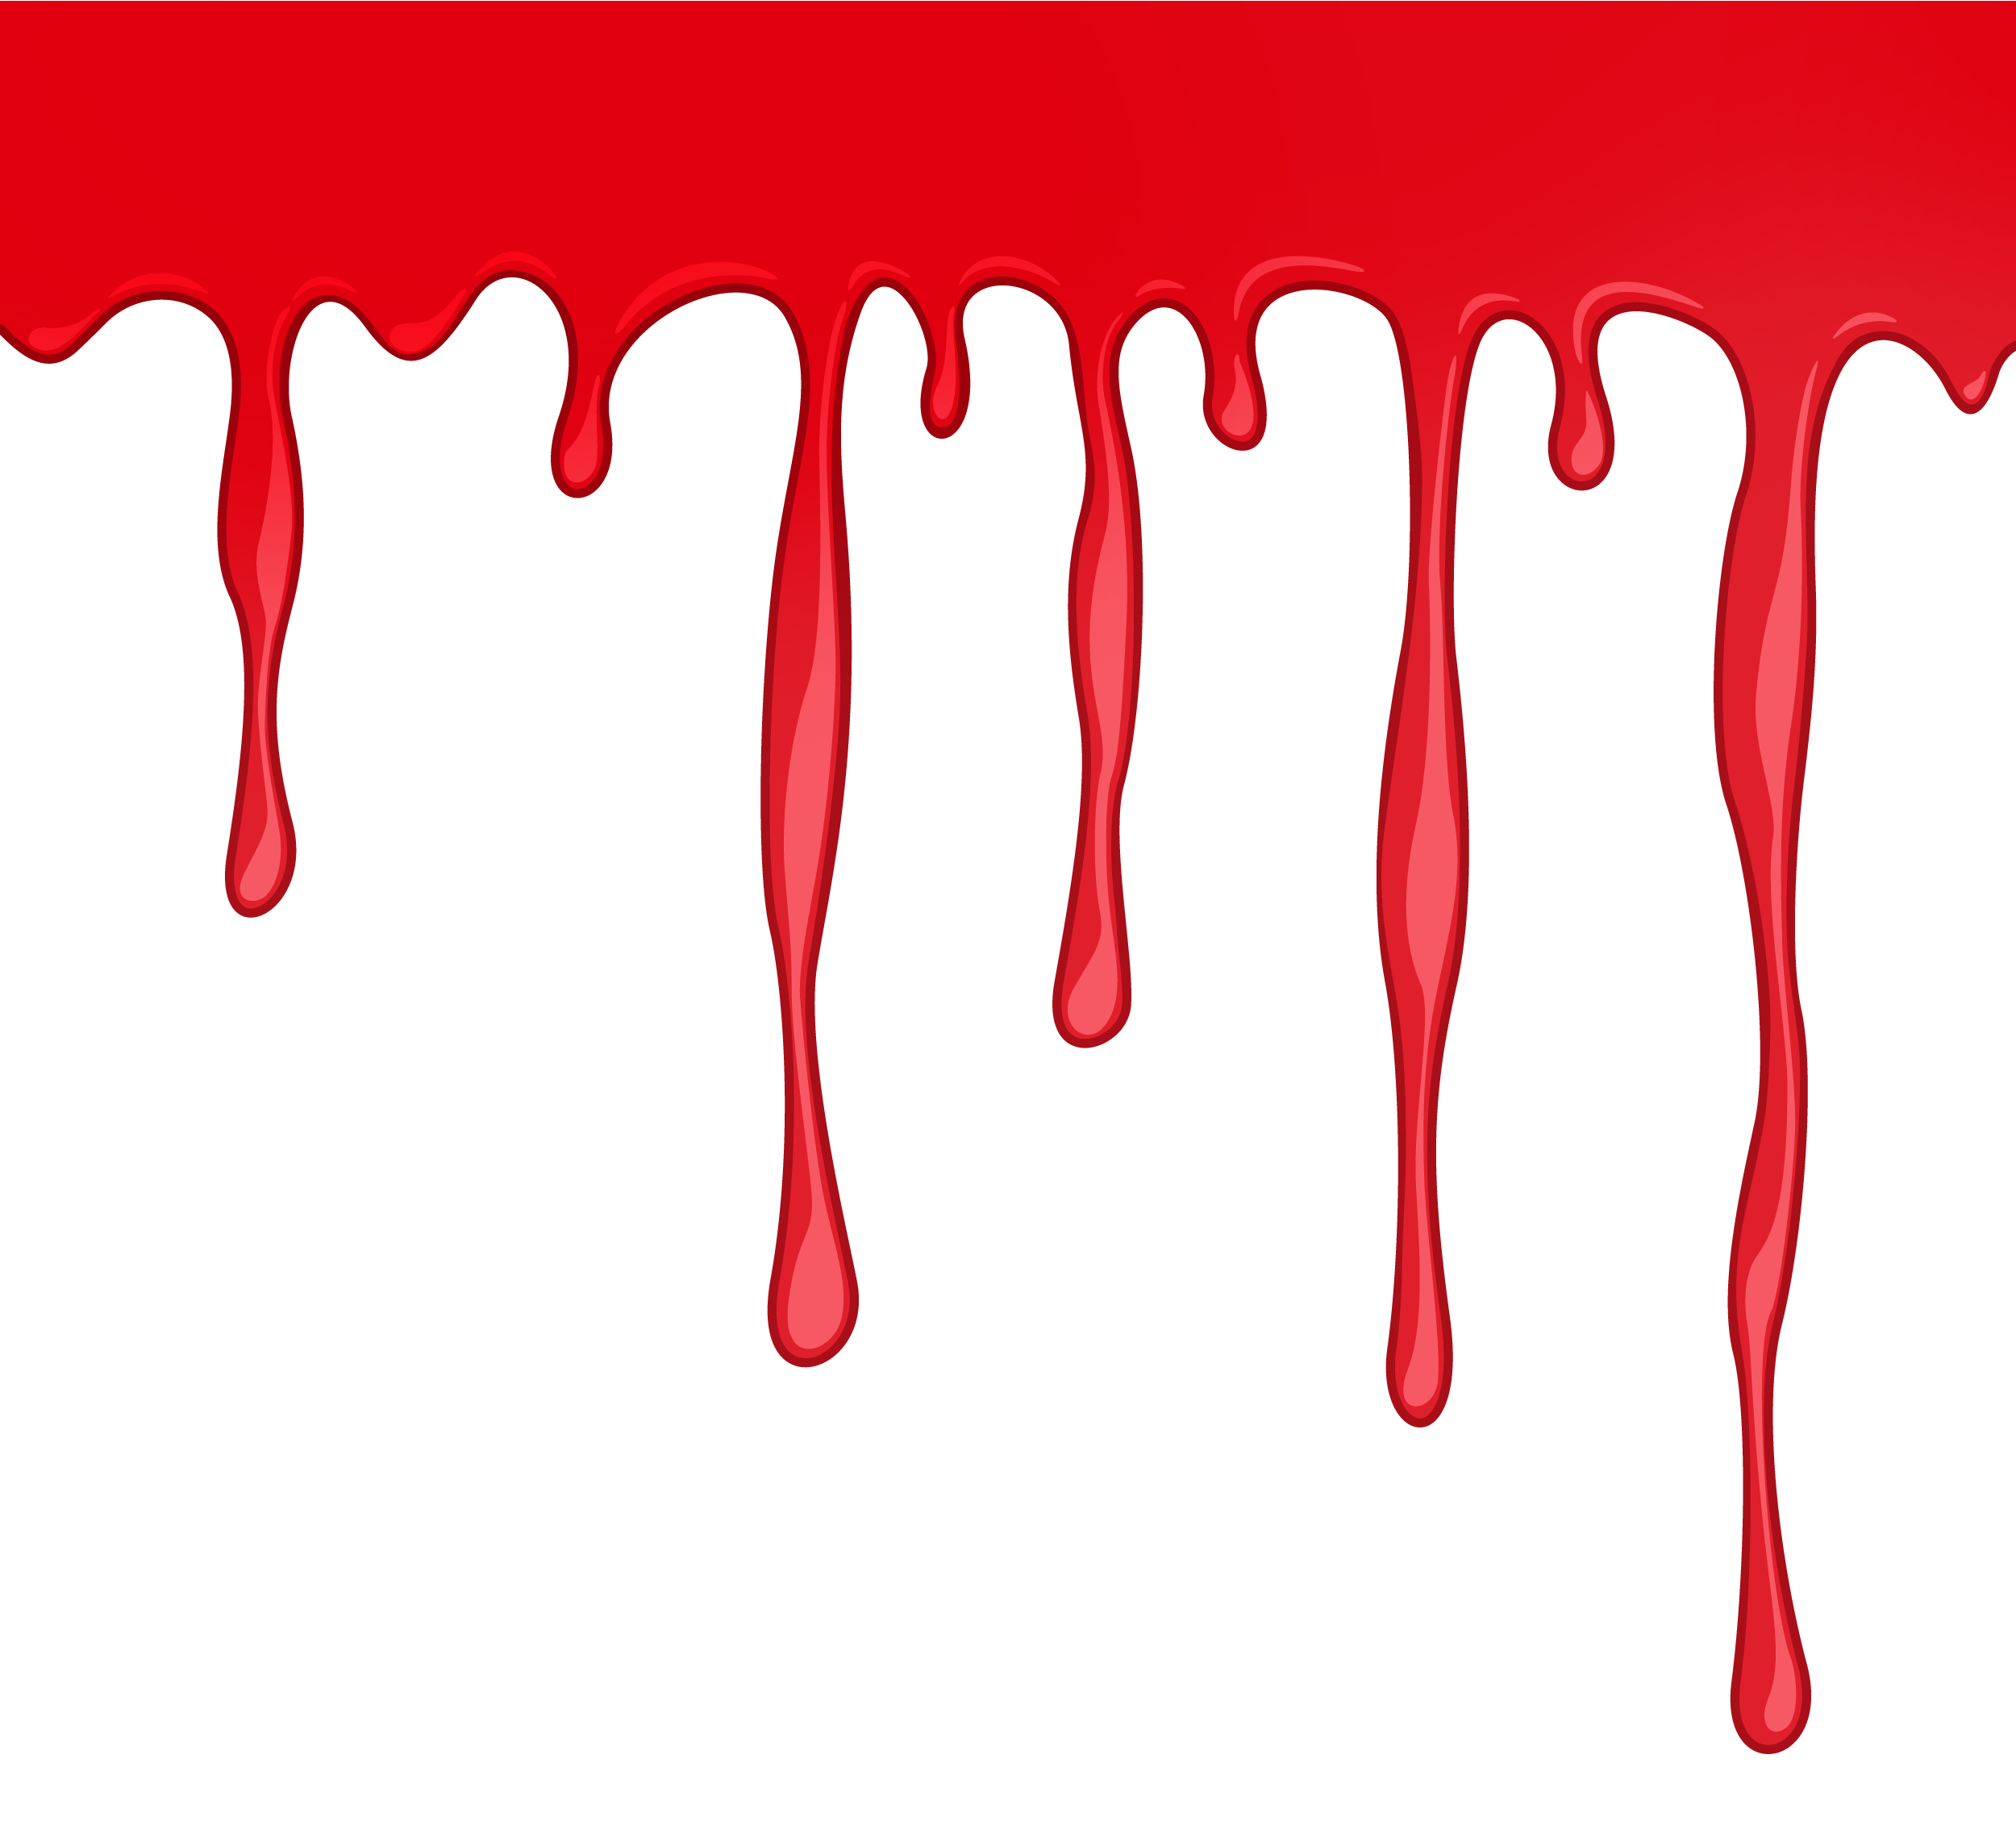 Paint clipart paint drip. Free png blood download